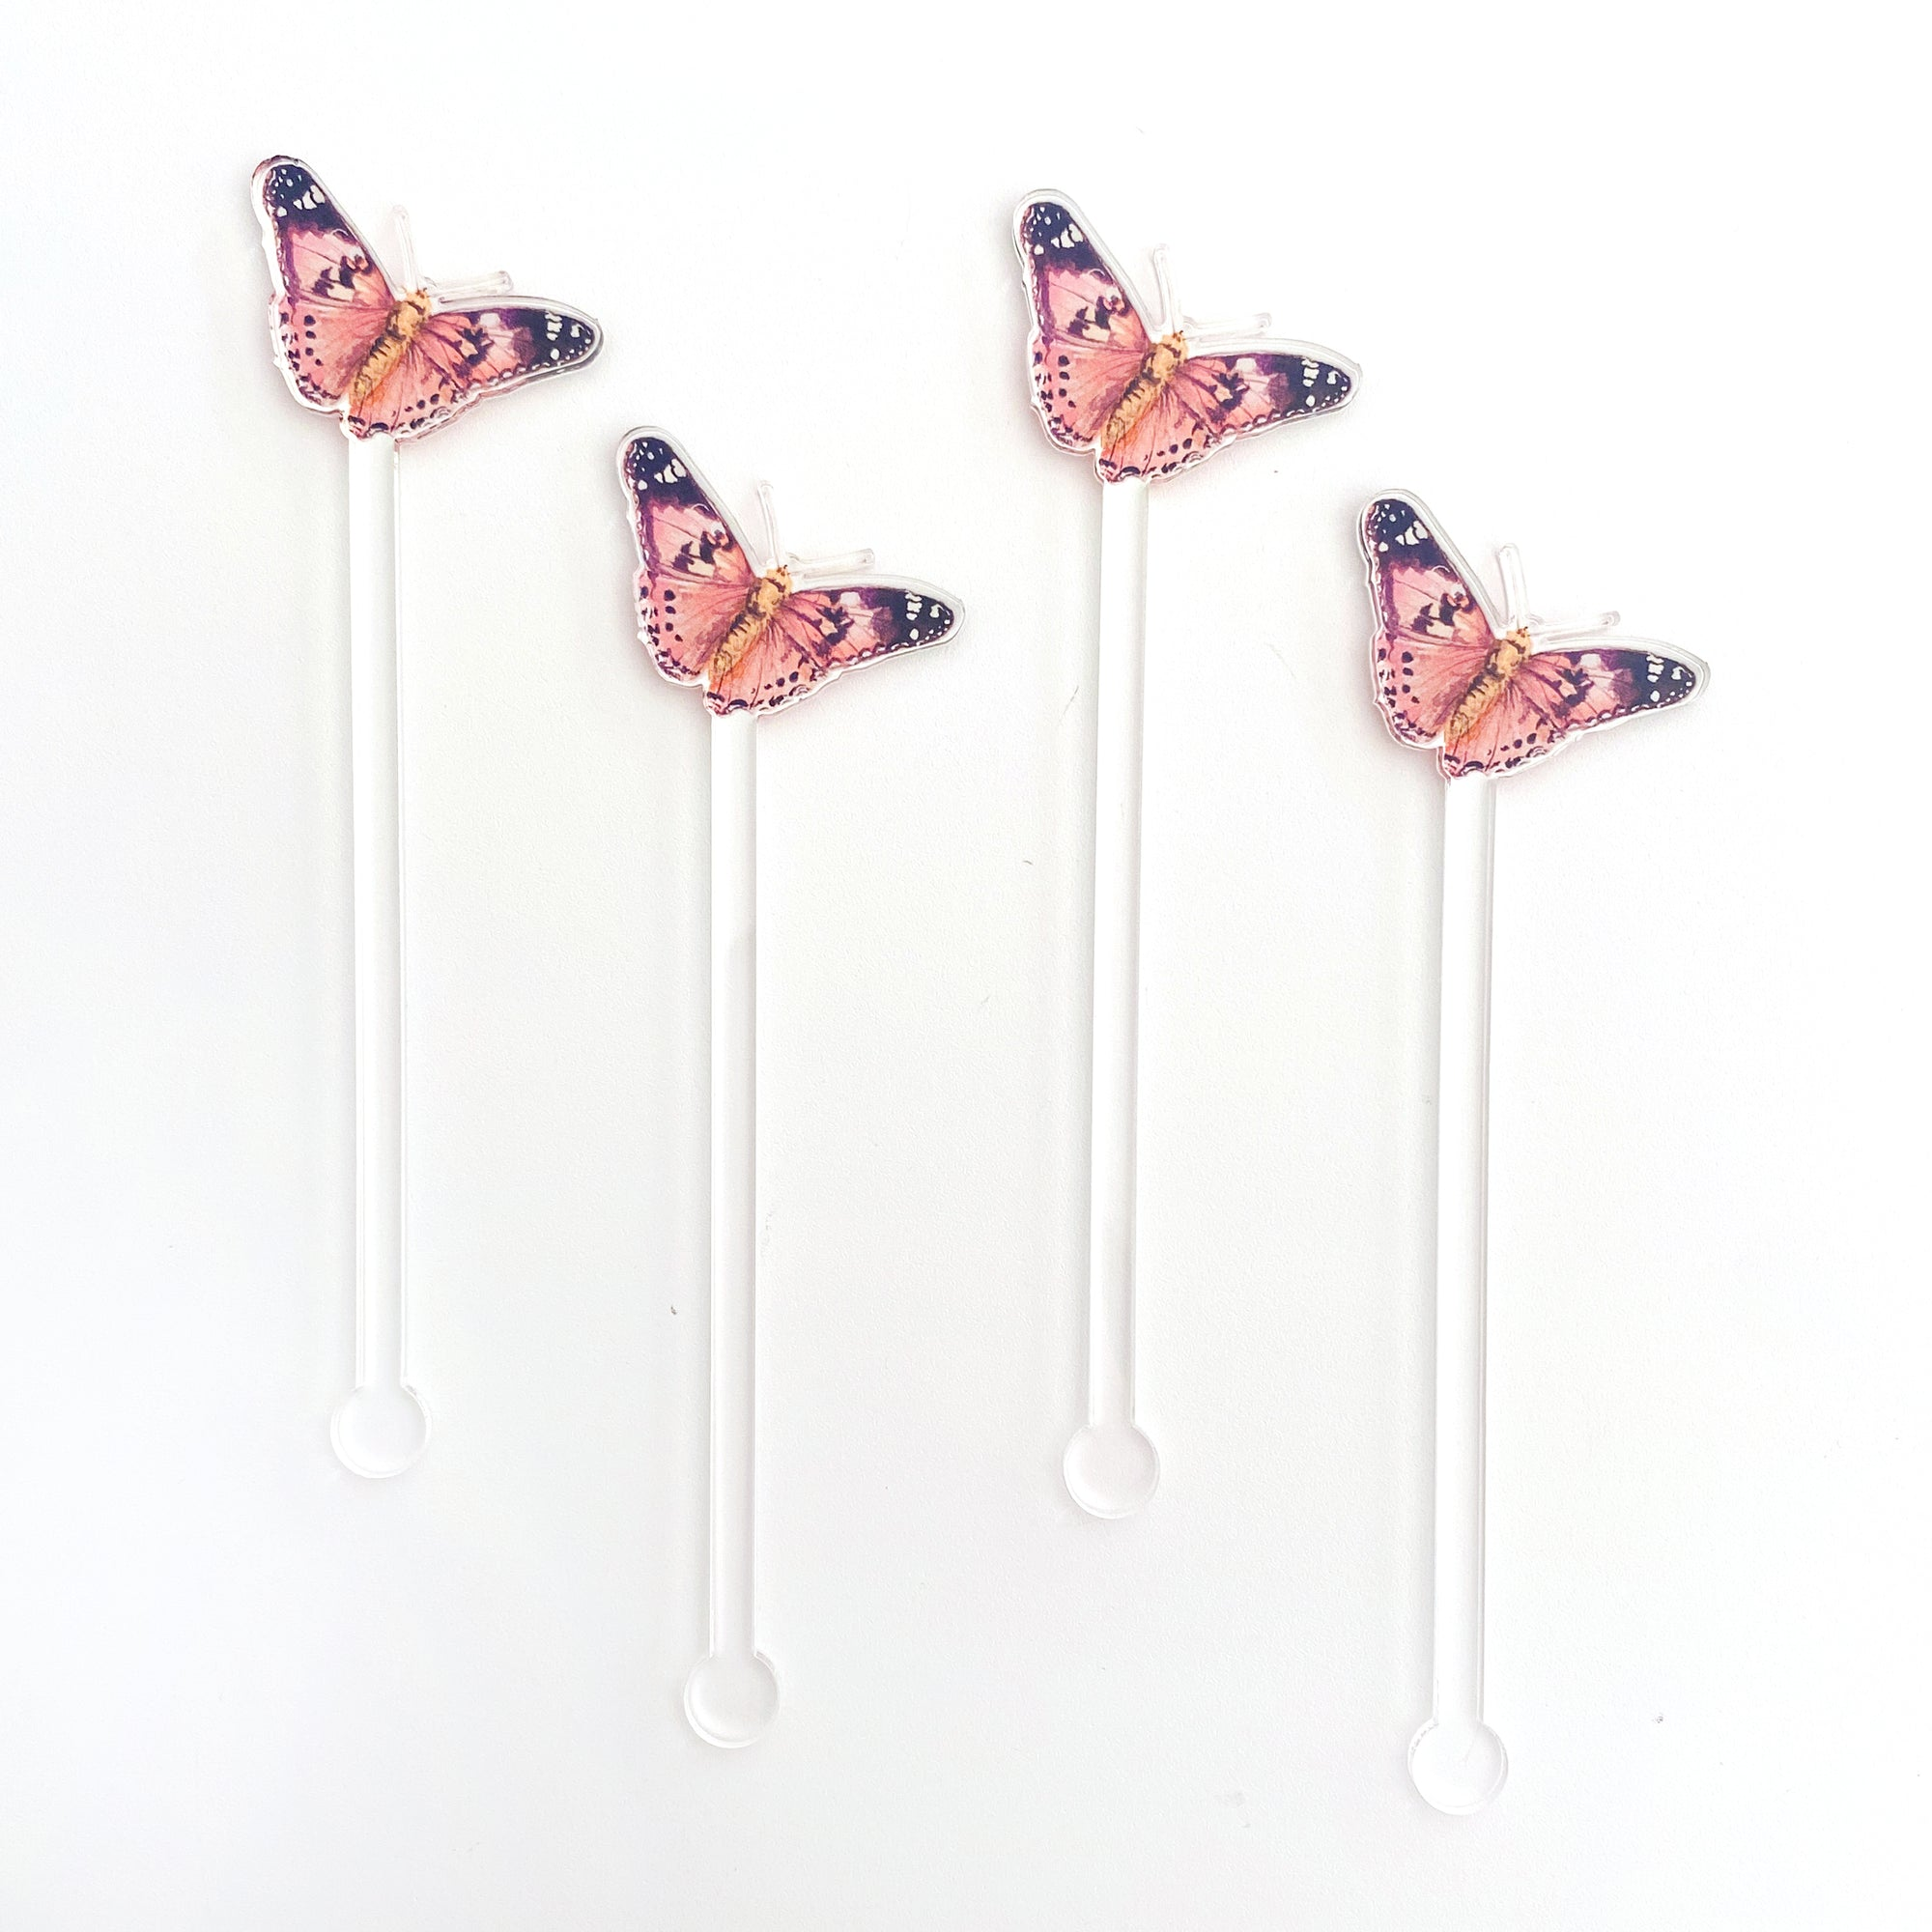 Painted Lady Butterfly Acrylic Stir Sticks